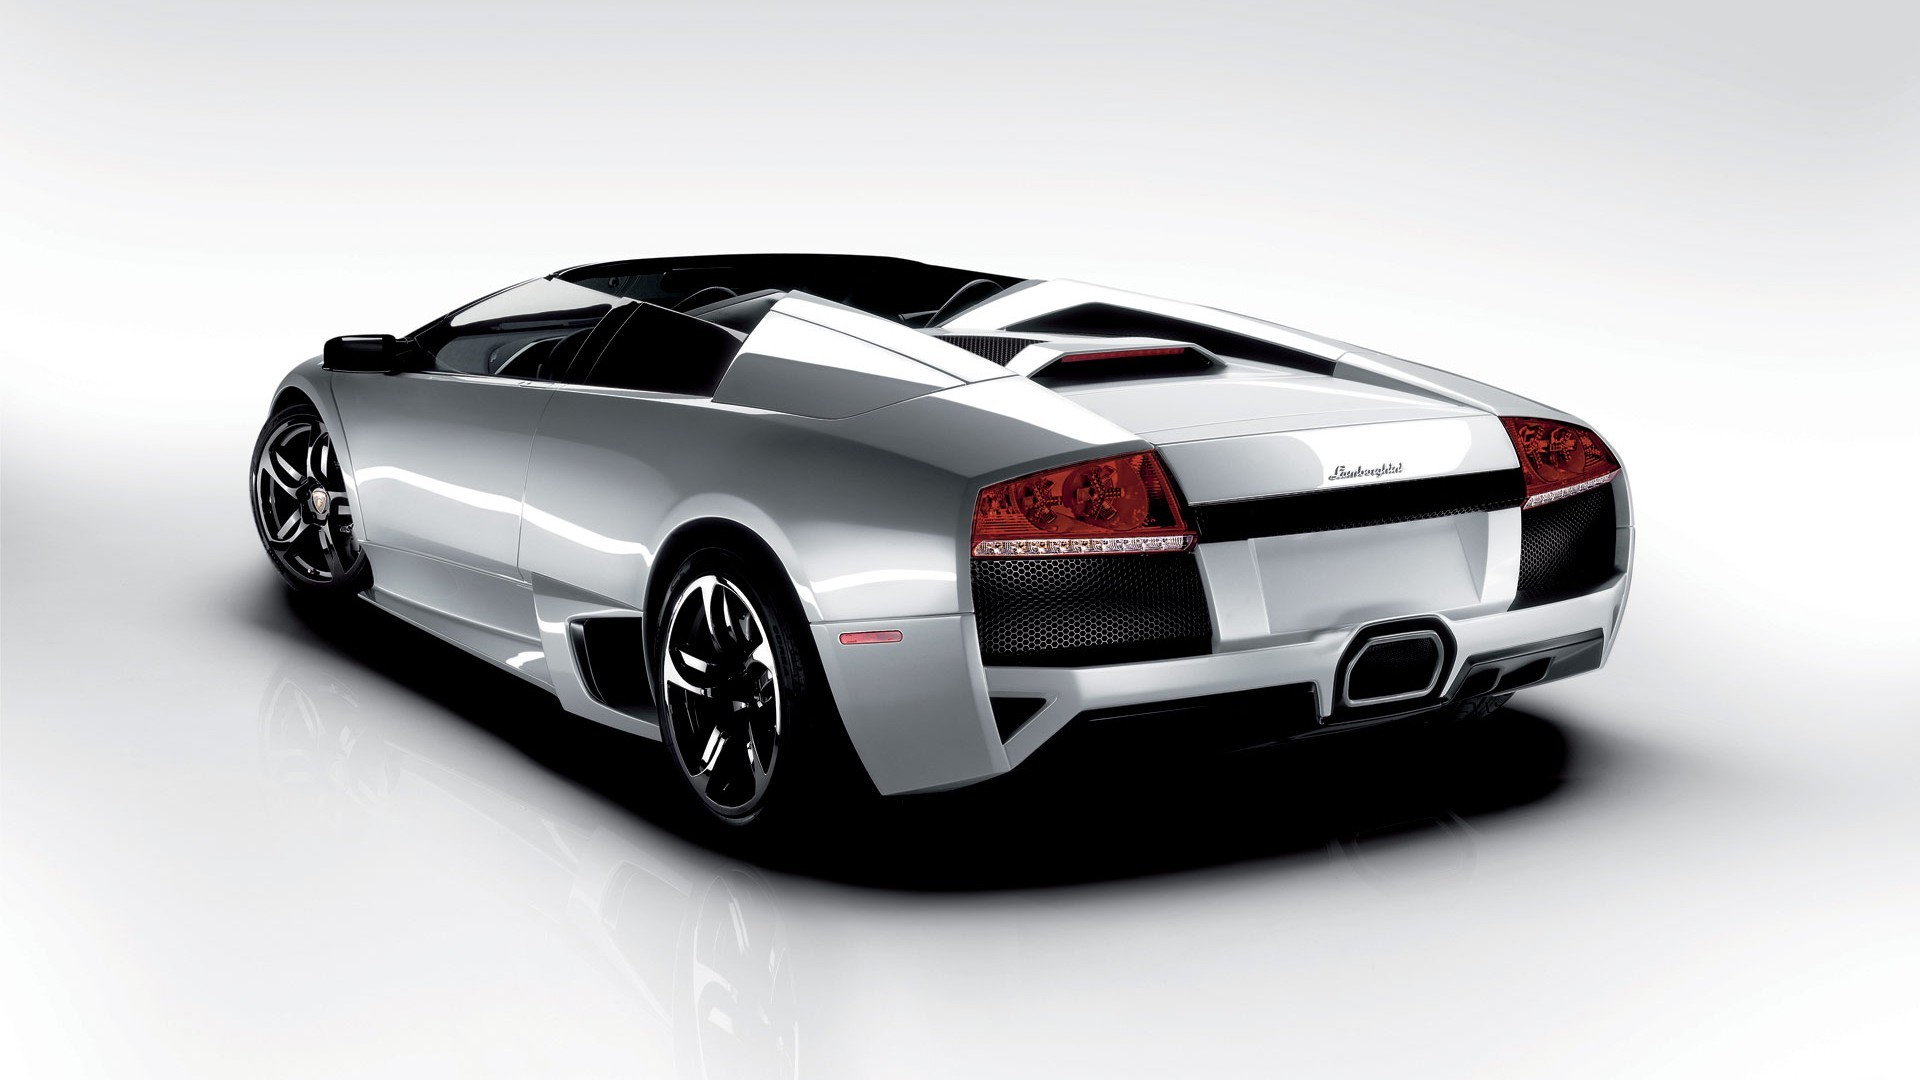 vehicles Lamborghini Murcielago LP640 HD Wallpaper